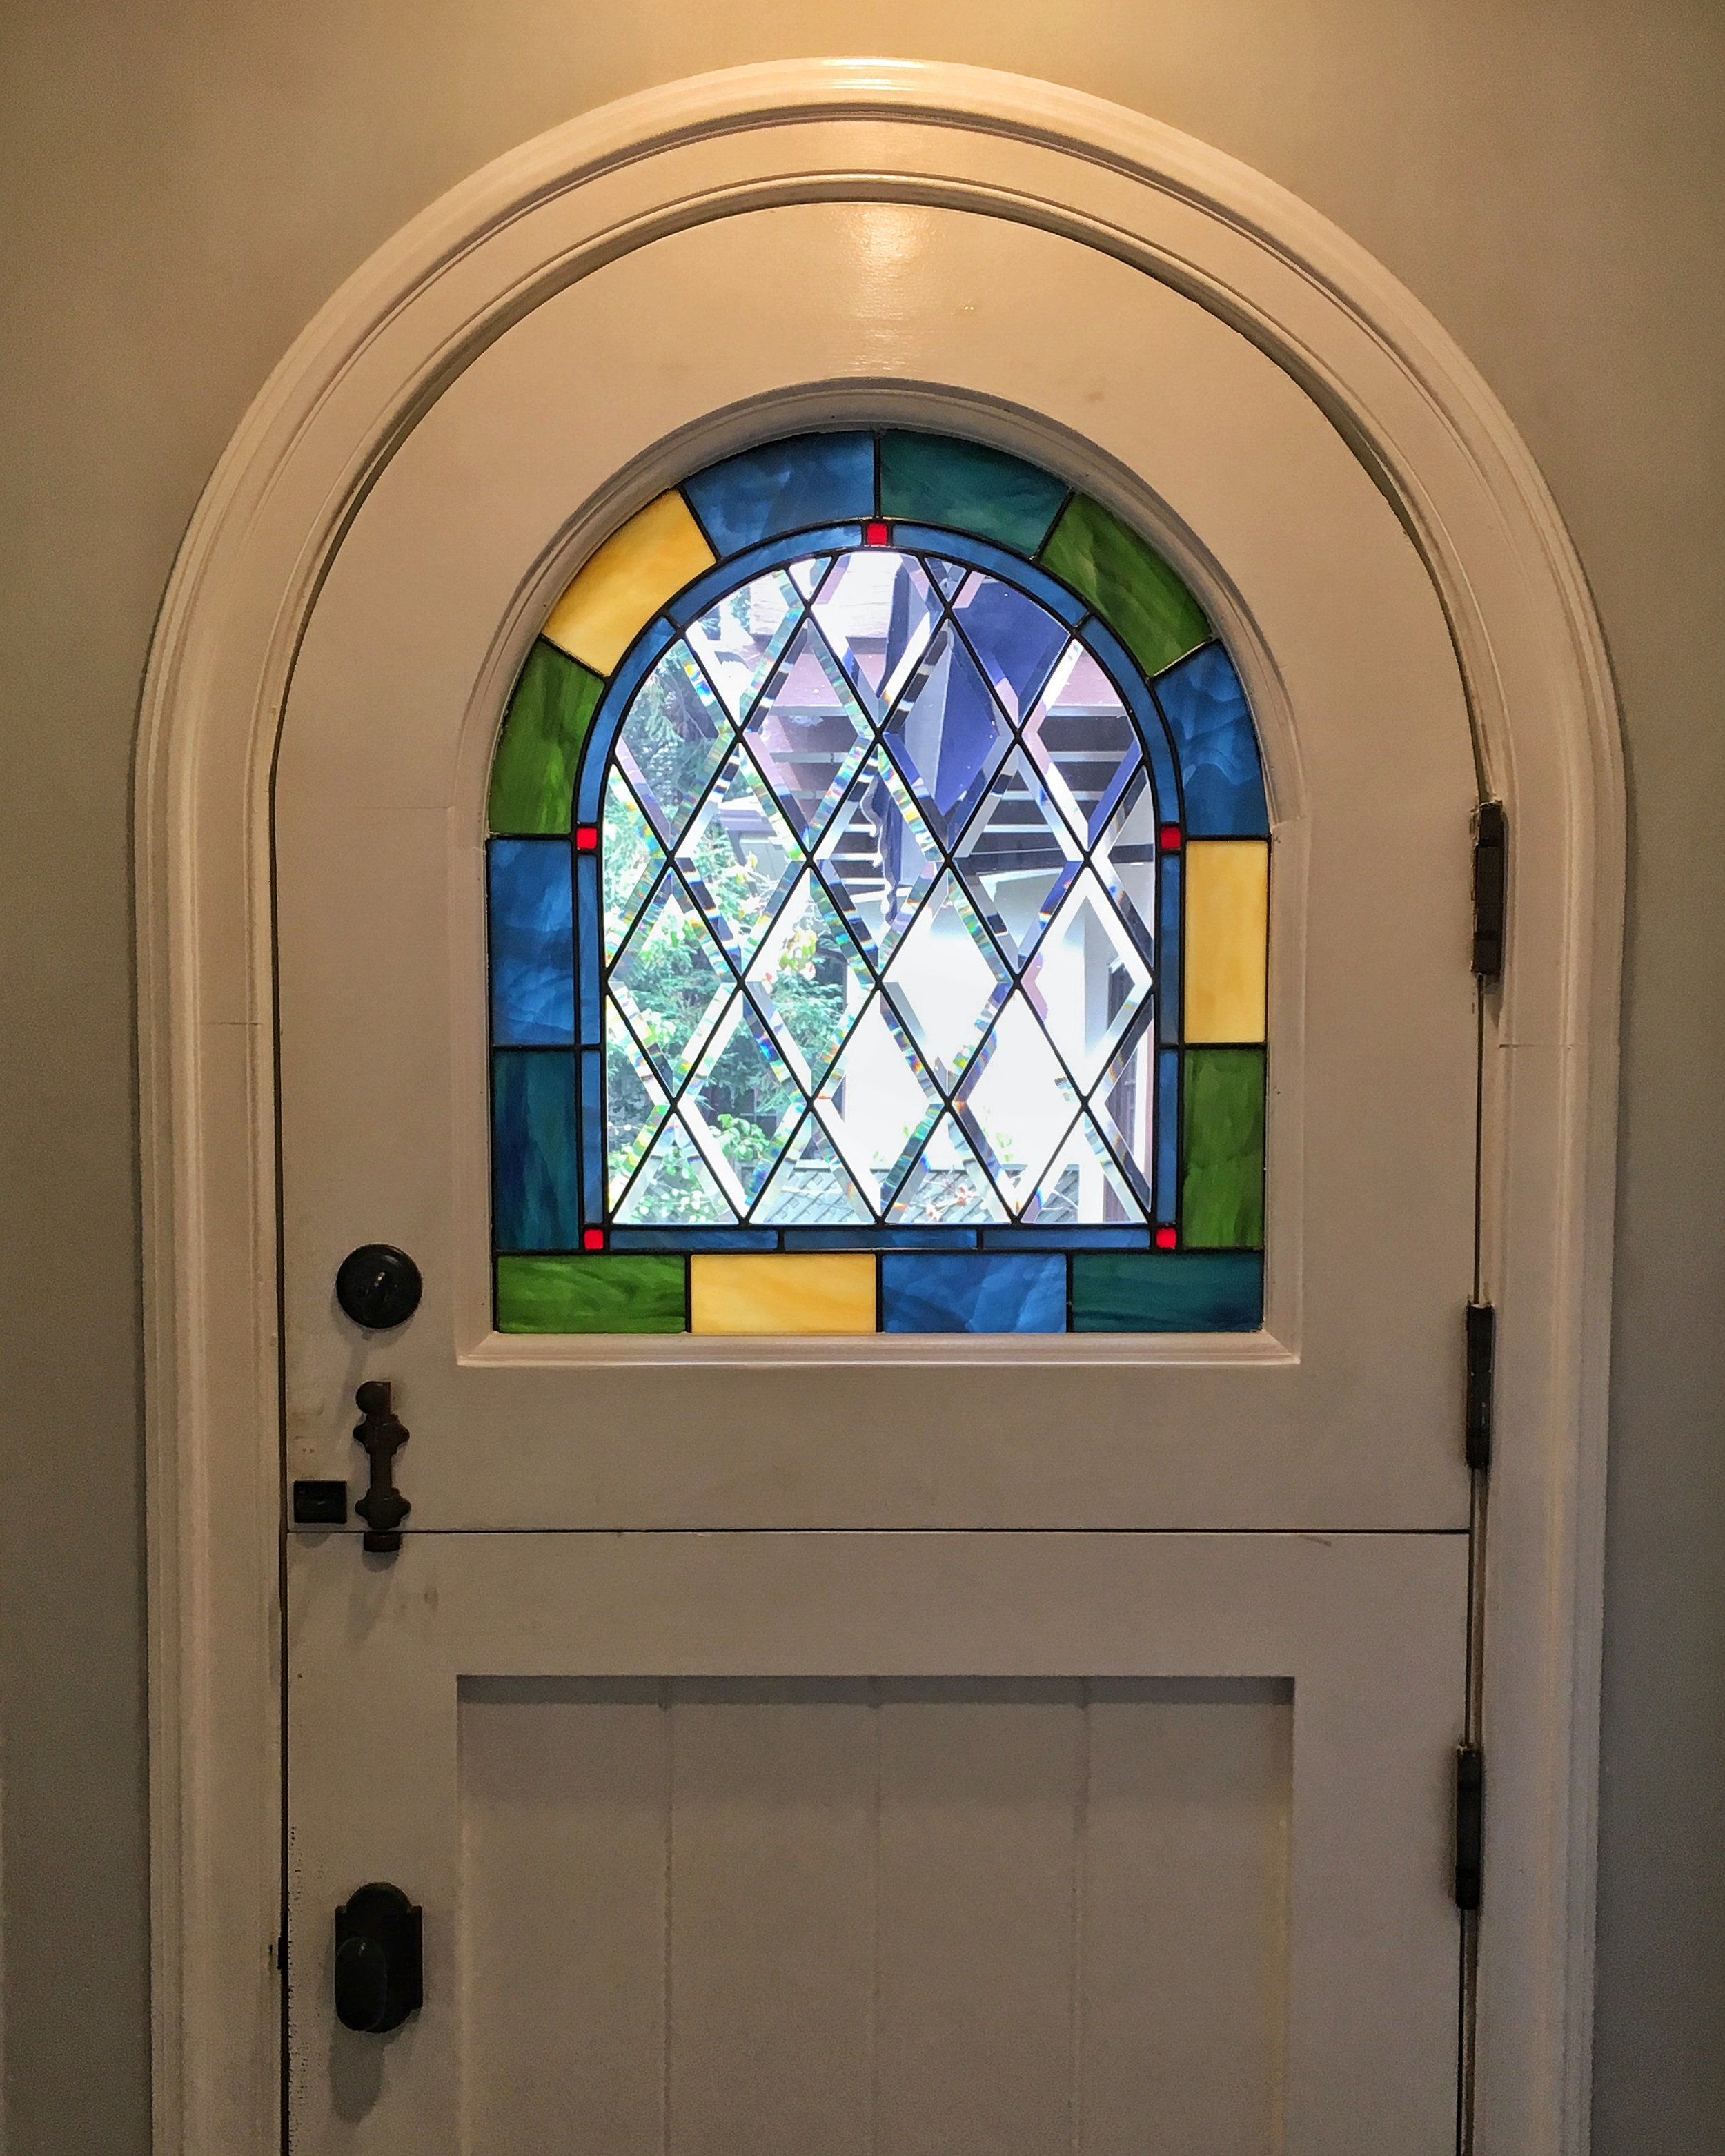 Stained Leaded Glass Legacy Glass Studios Atherton San Francisco Menlo Park California Custom Design Craftsman Dutch Arched Door Beveled Diamonds Colorful.JPG